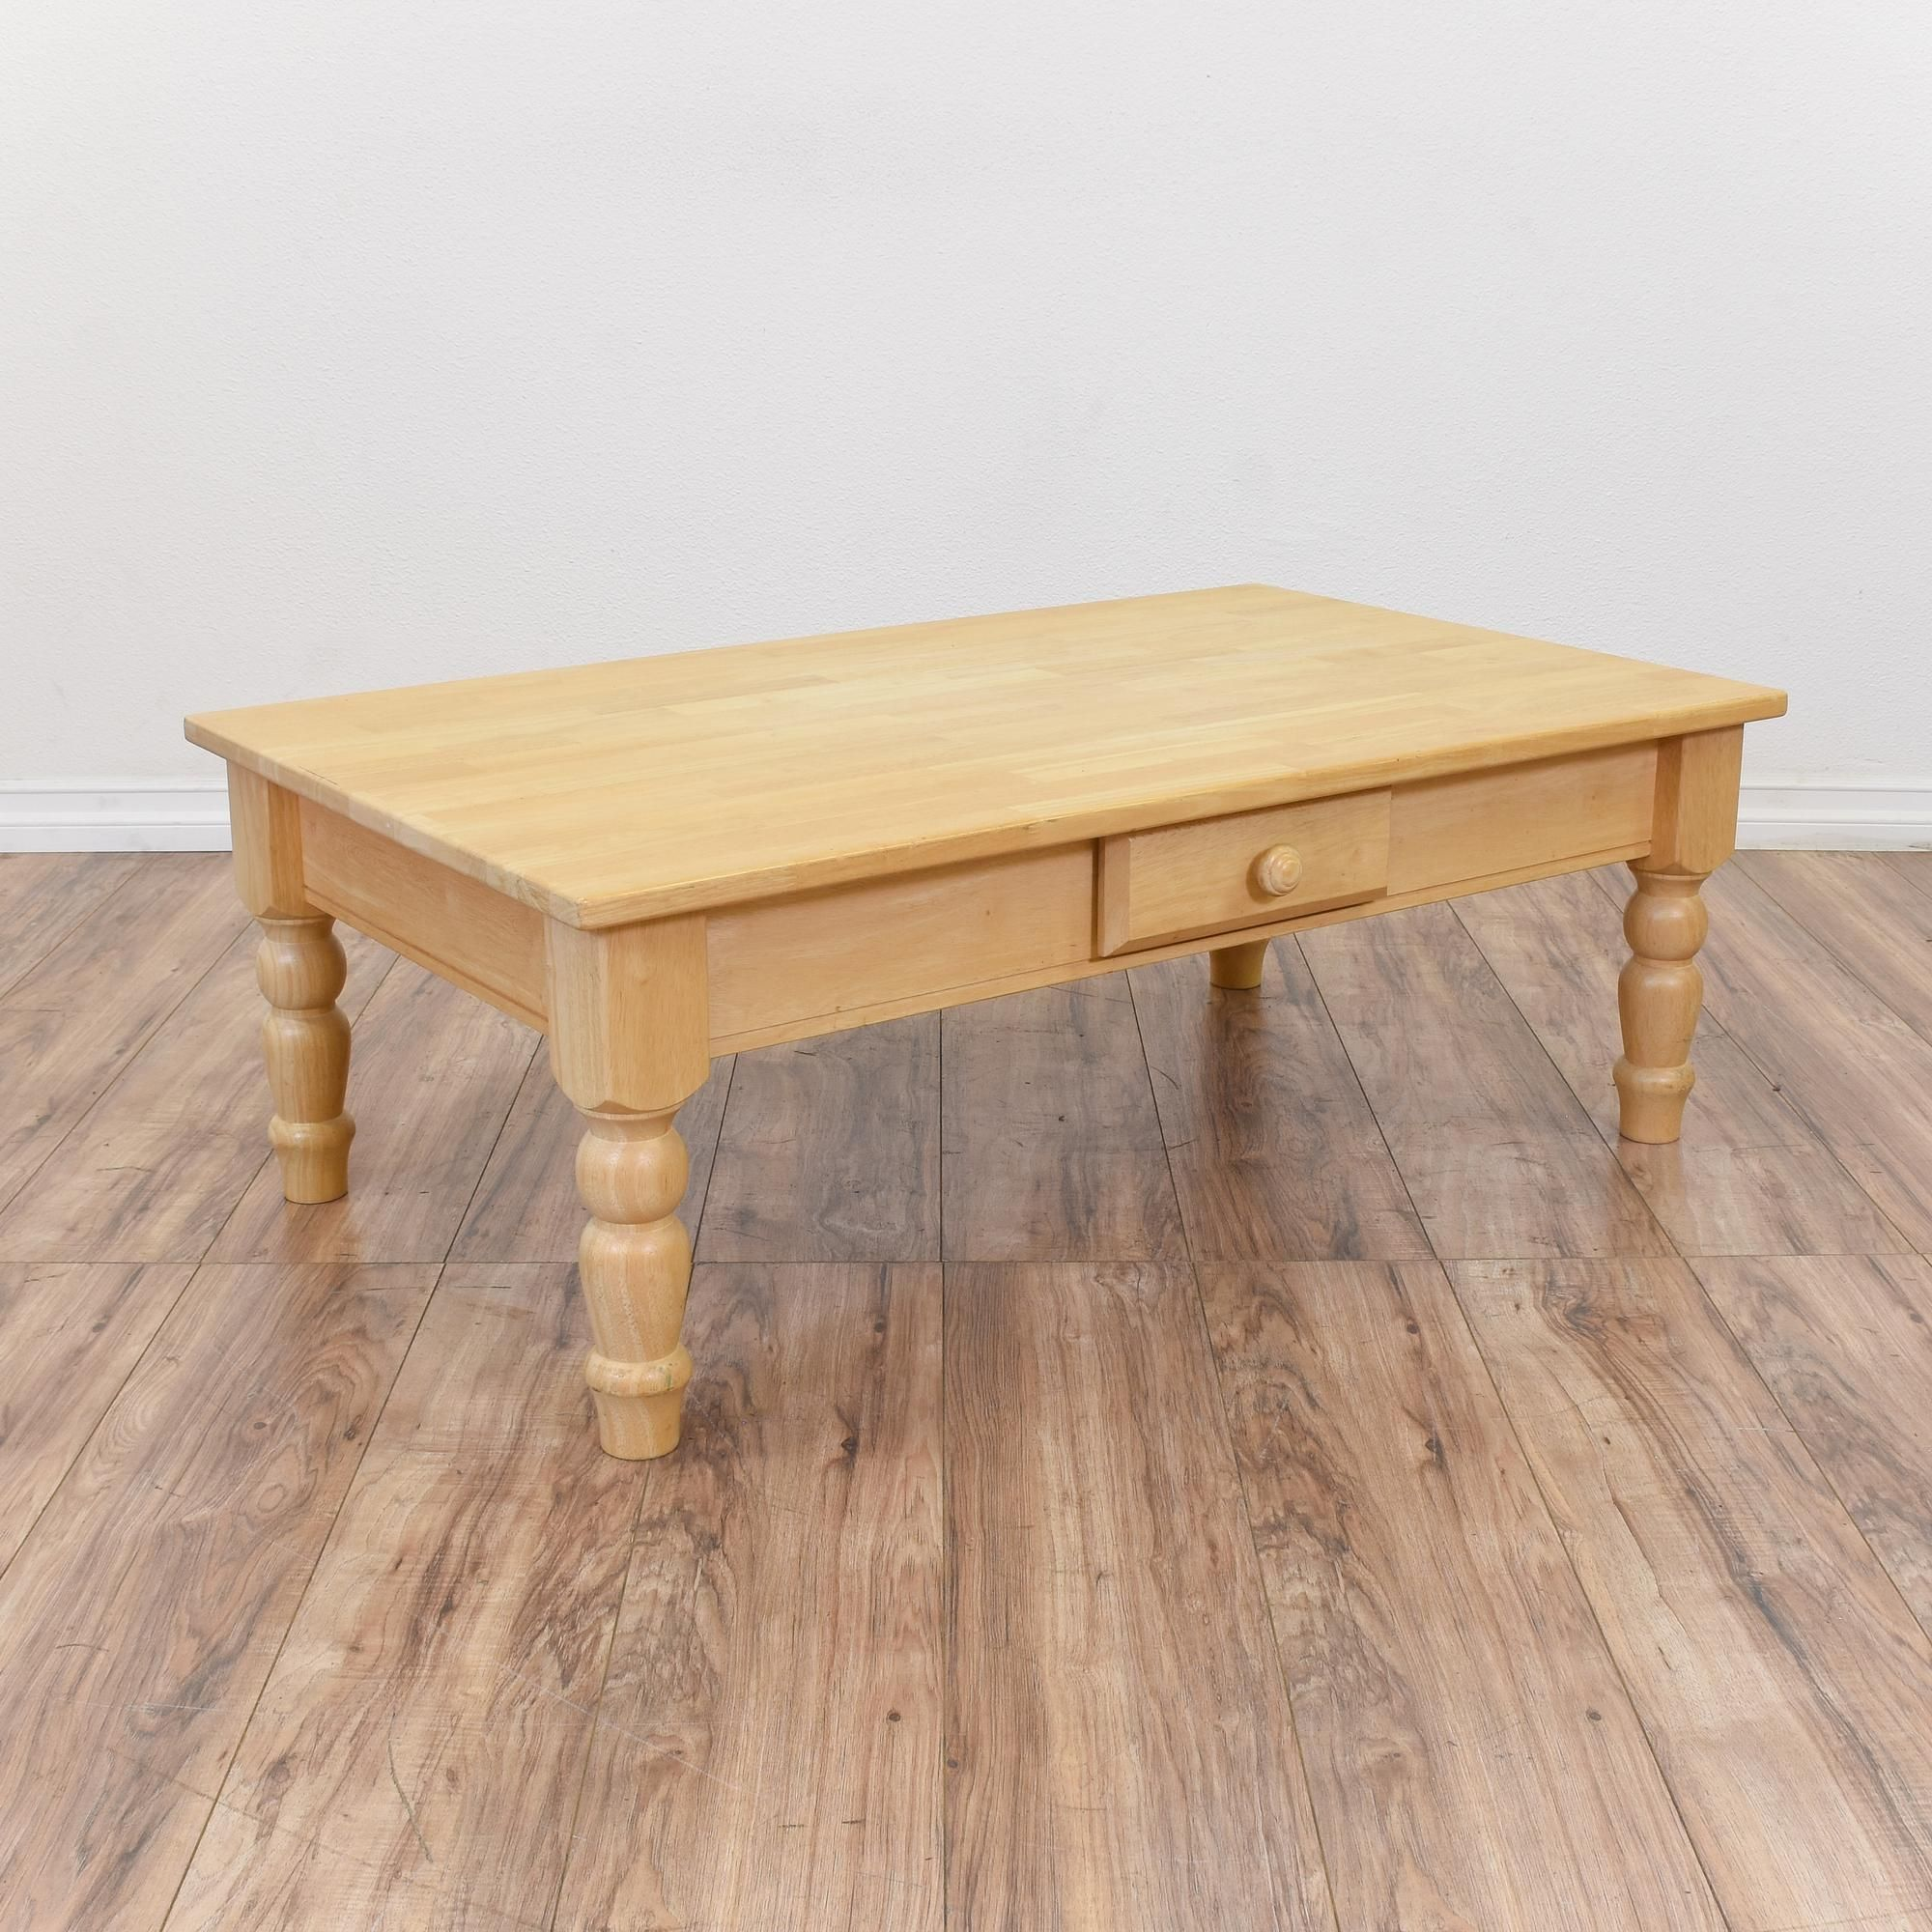 This large coffee table is featured in a solid wood with a glossy